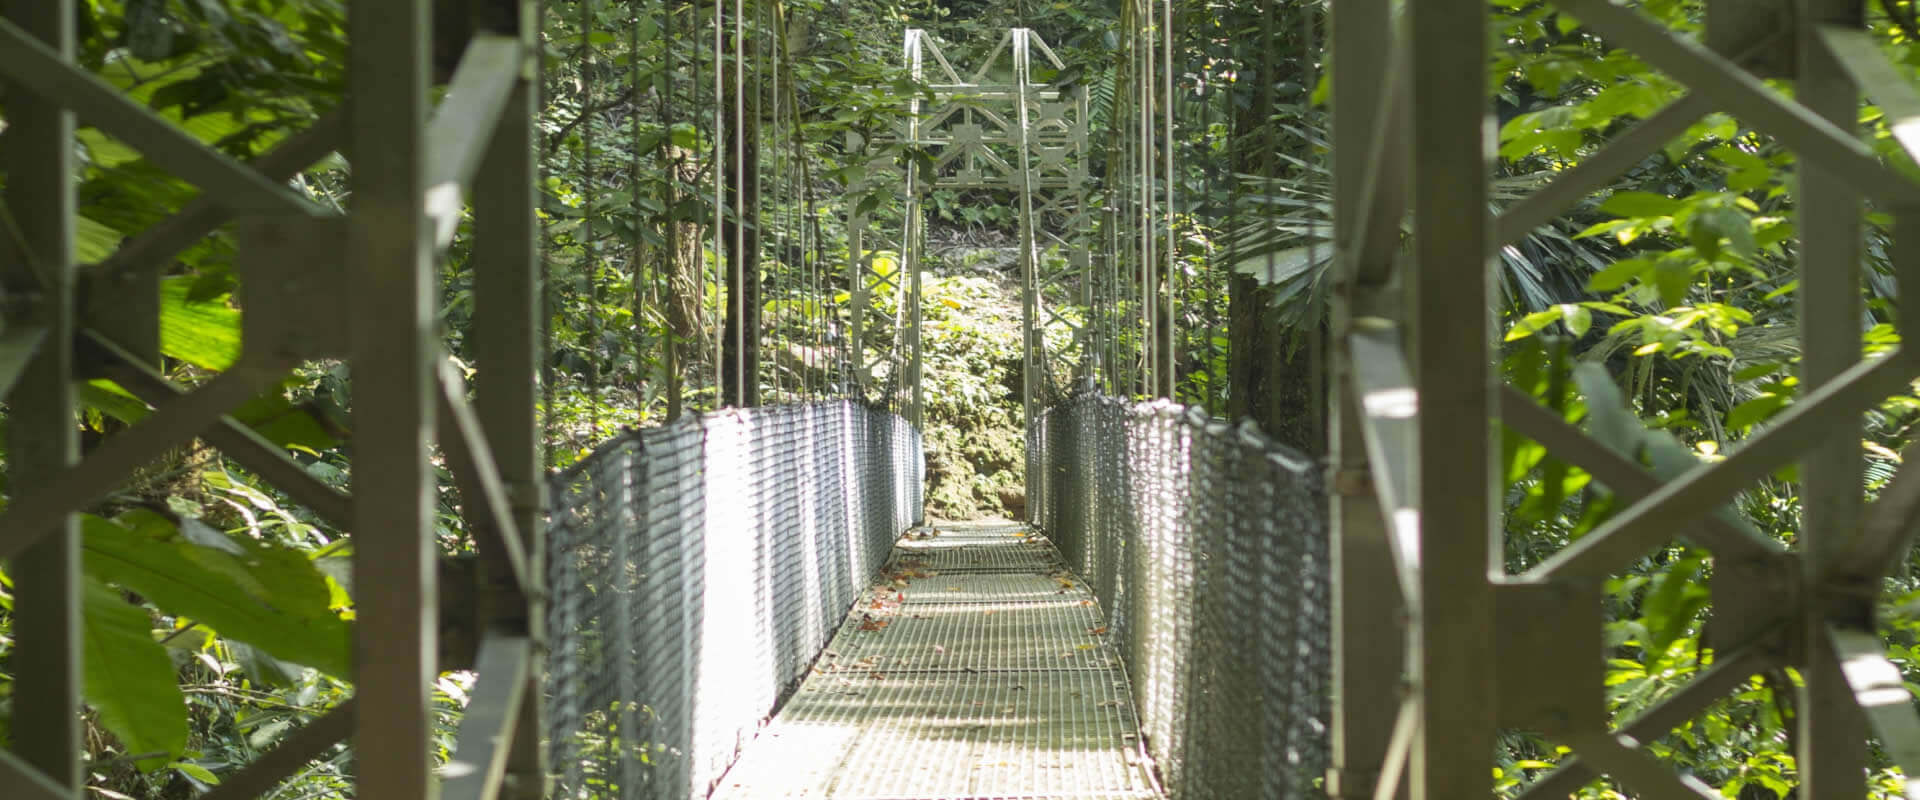 Hanging Bridges, La Fortuna, Costa Rica